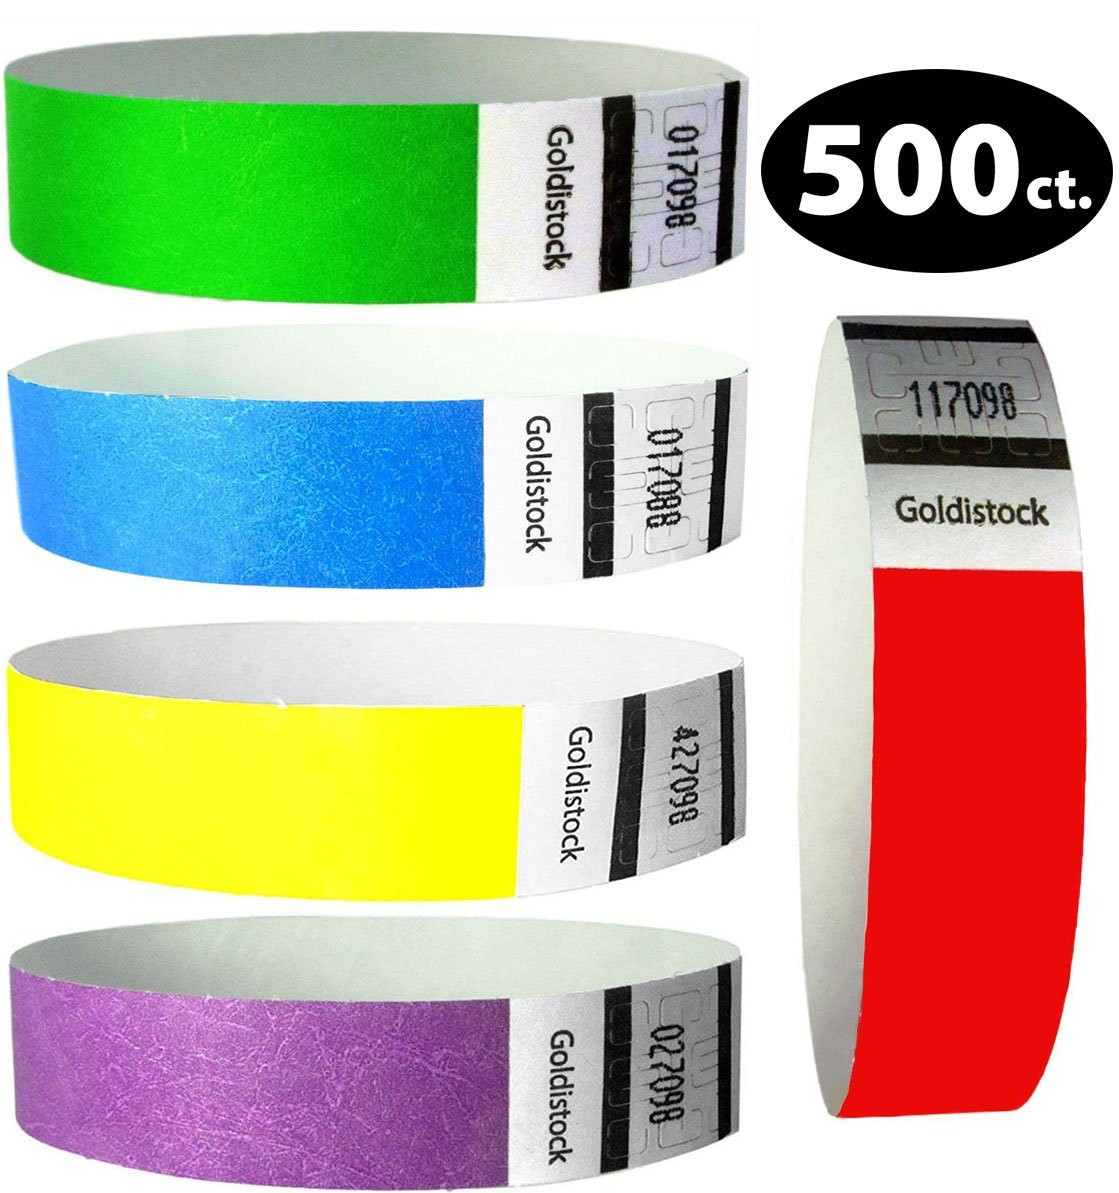 Goldistock Perfect Combo Variety Pack Set A - 500 Count (100/Color) 3/4'' Tyvek Wristbands- Neon Green, Neon Blue, Neon Red, Neon Yellow, & Neon Purple - Event ID Bands (Paper-Like Texture)